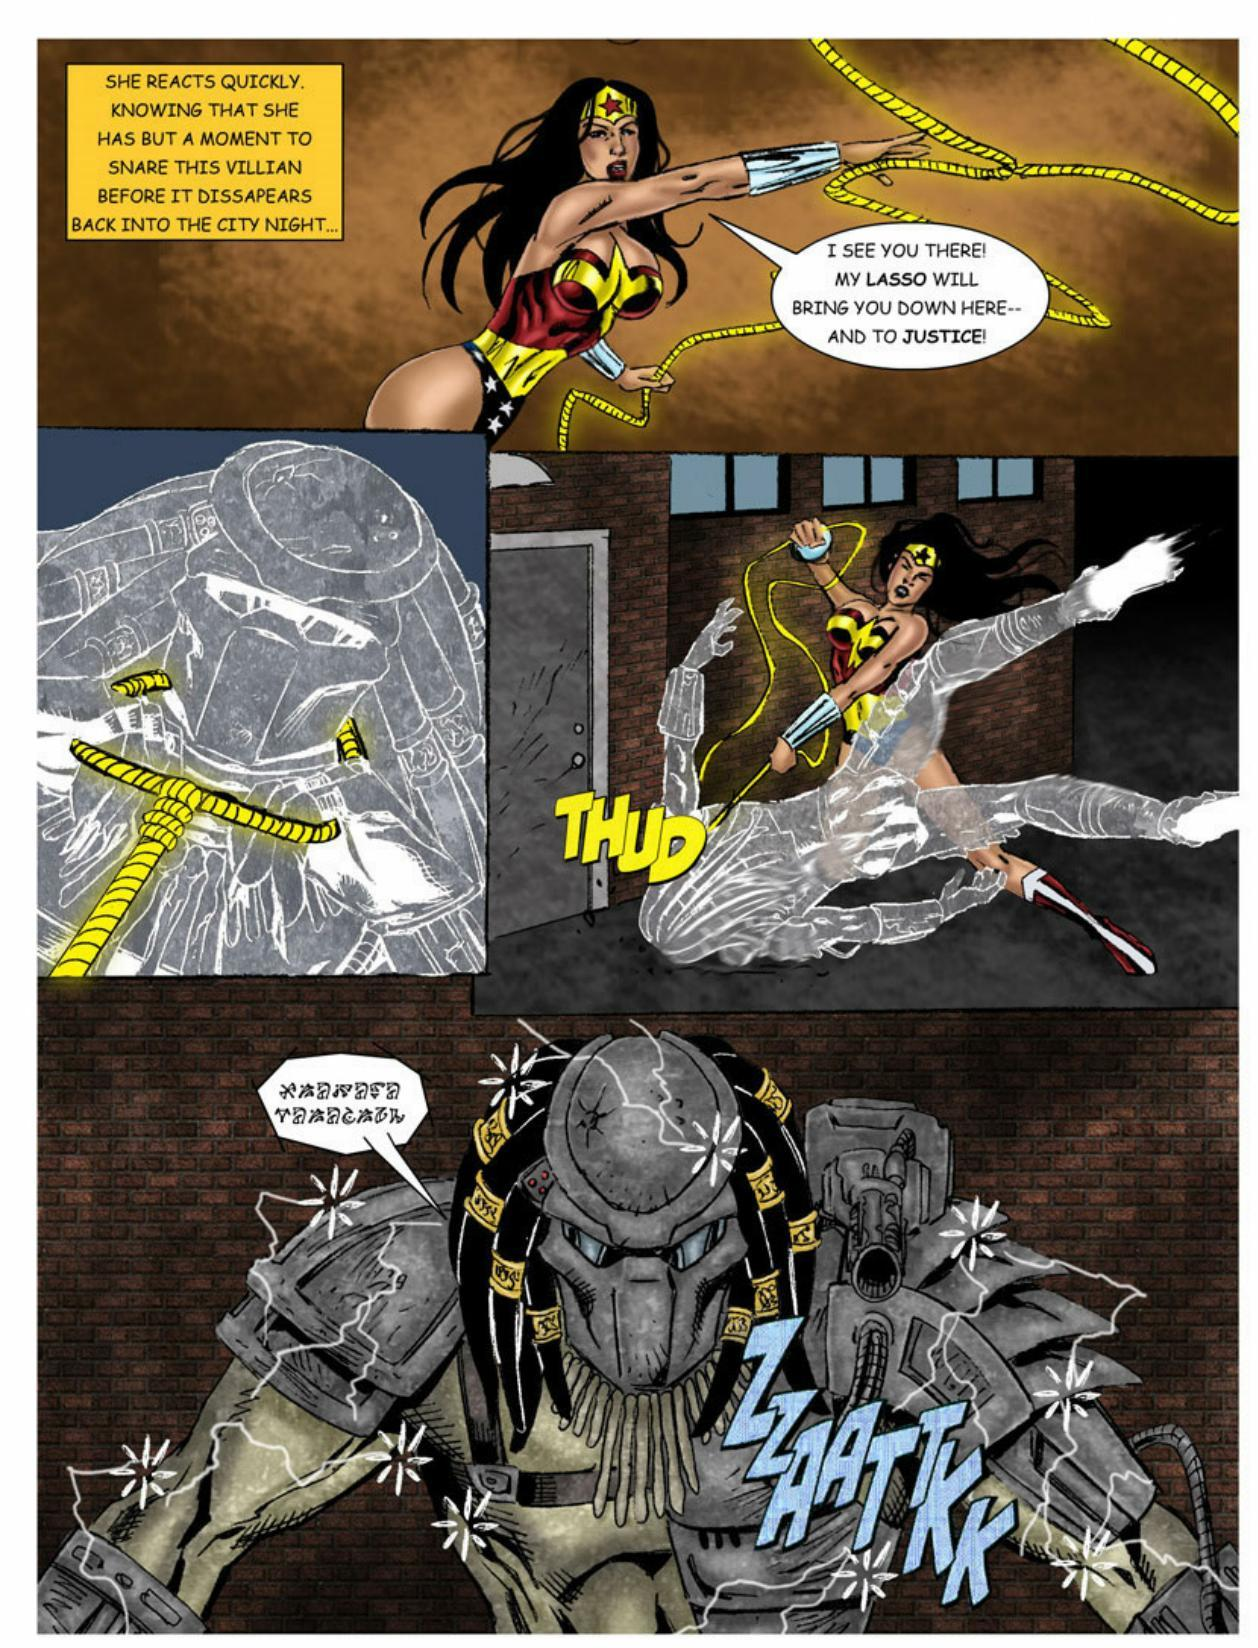 Wonder Woman vs Predator – Part 1-313 free sex comic